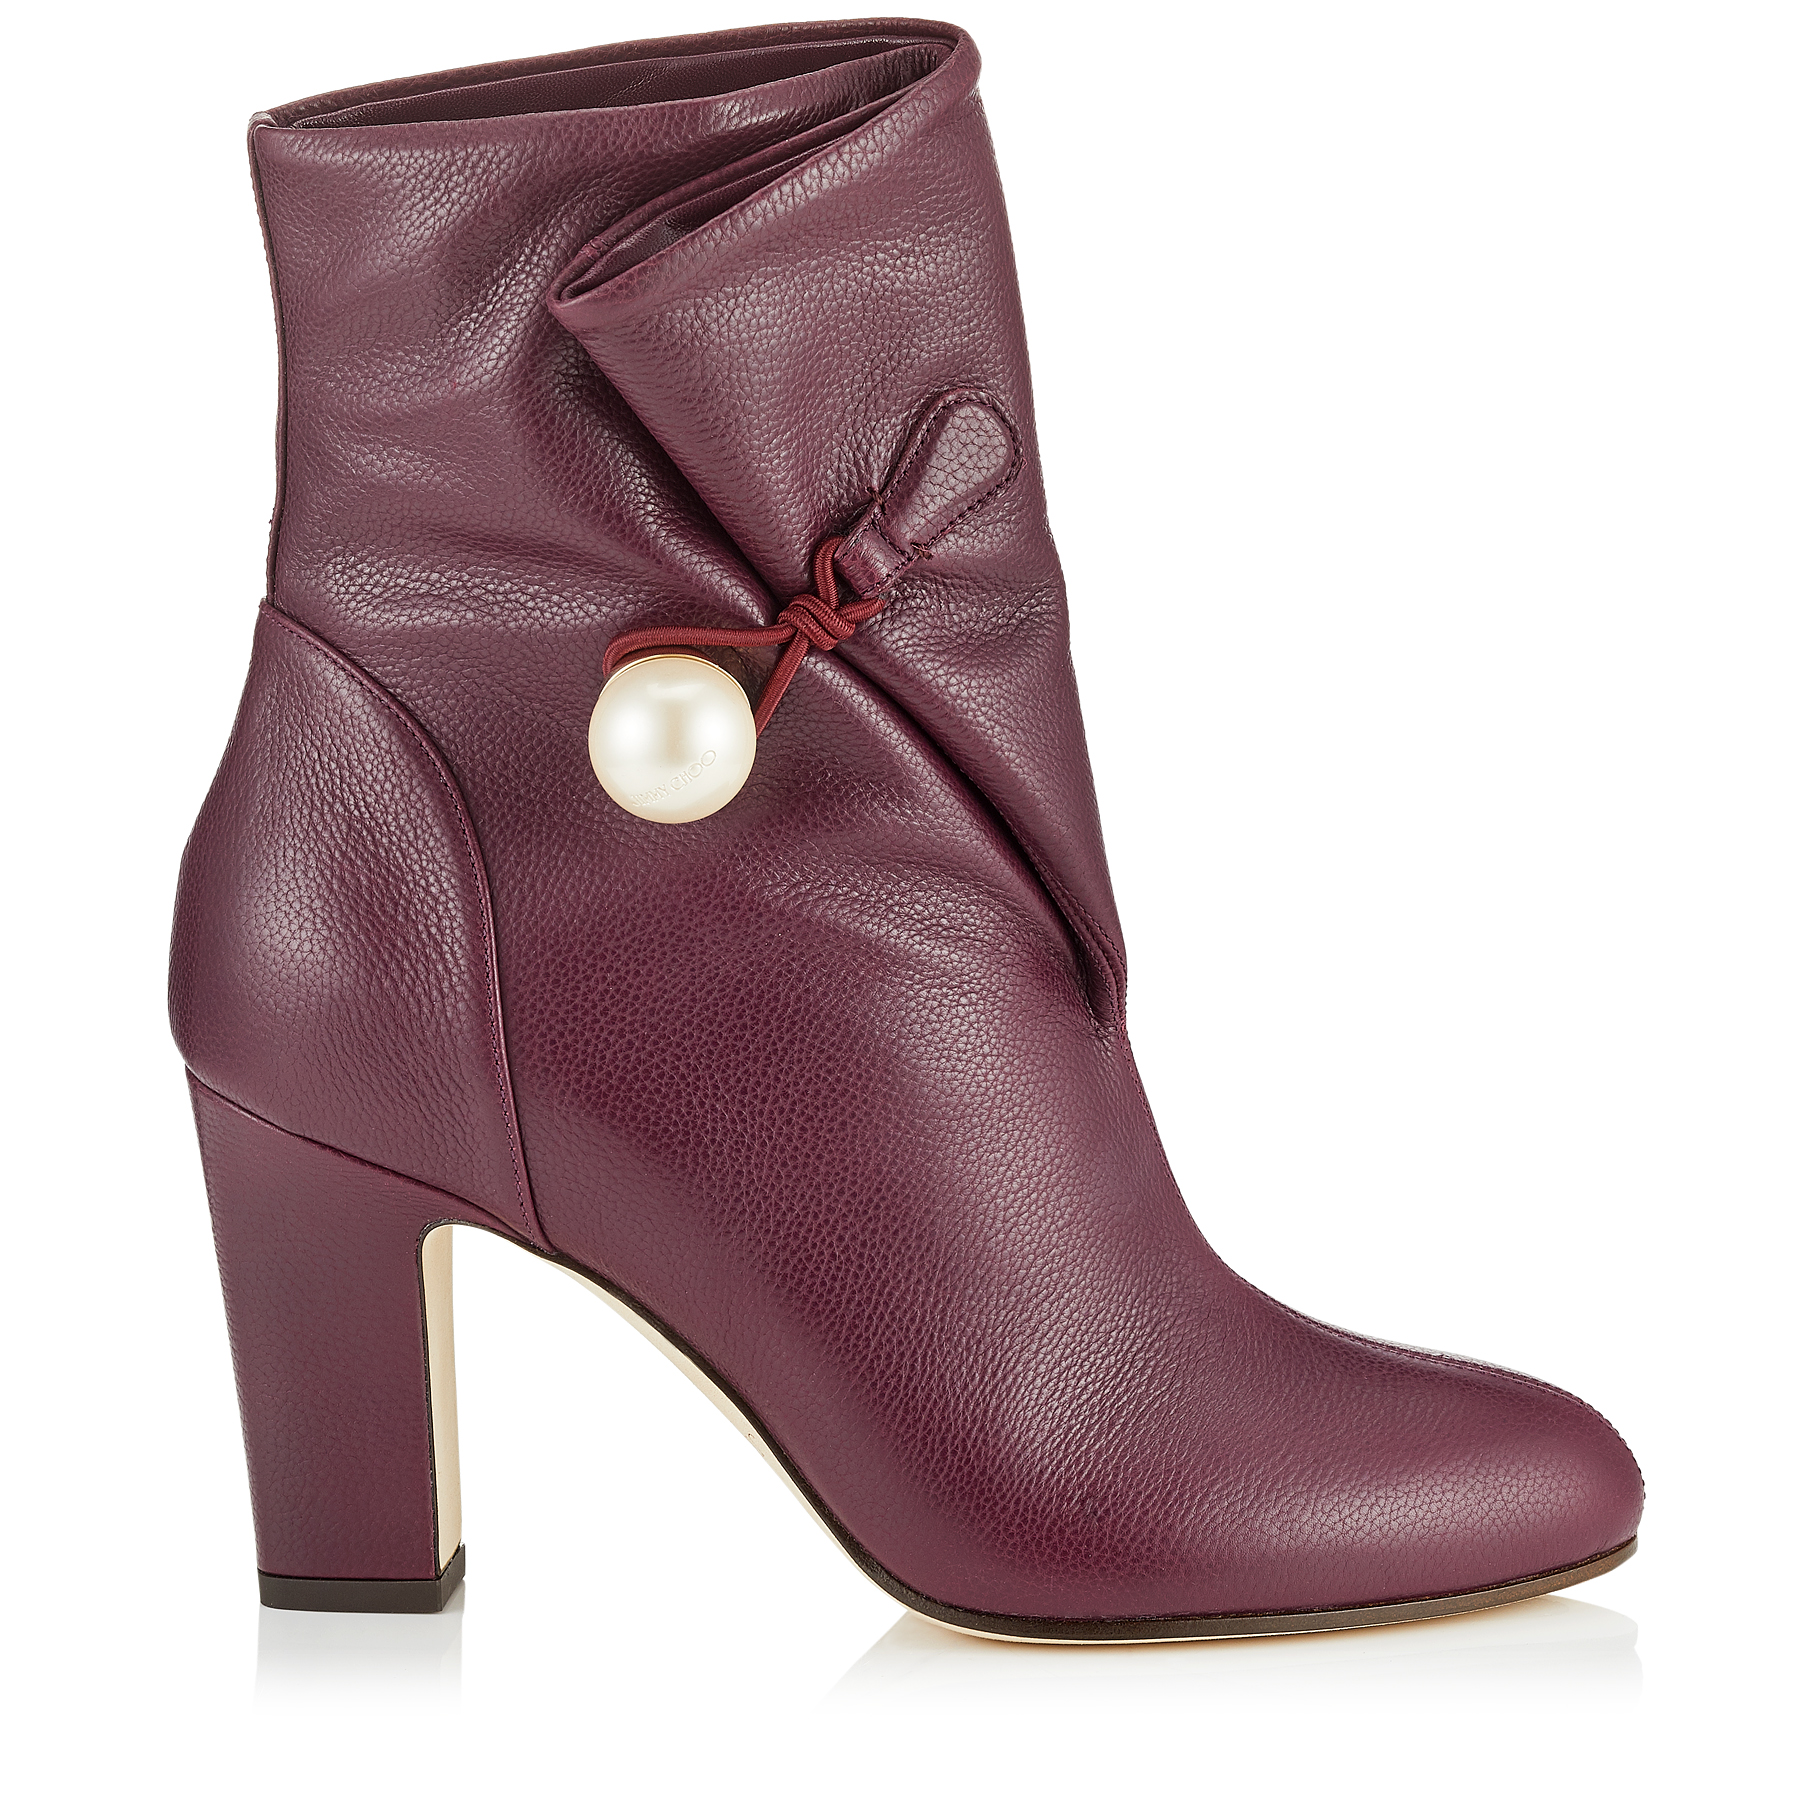 BETHANIE 85 Grape Grainy Leather Booties with Pearl Detailing by Jimmy Choo